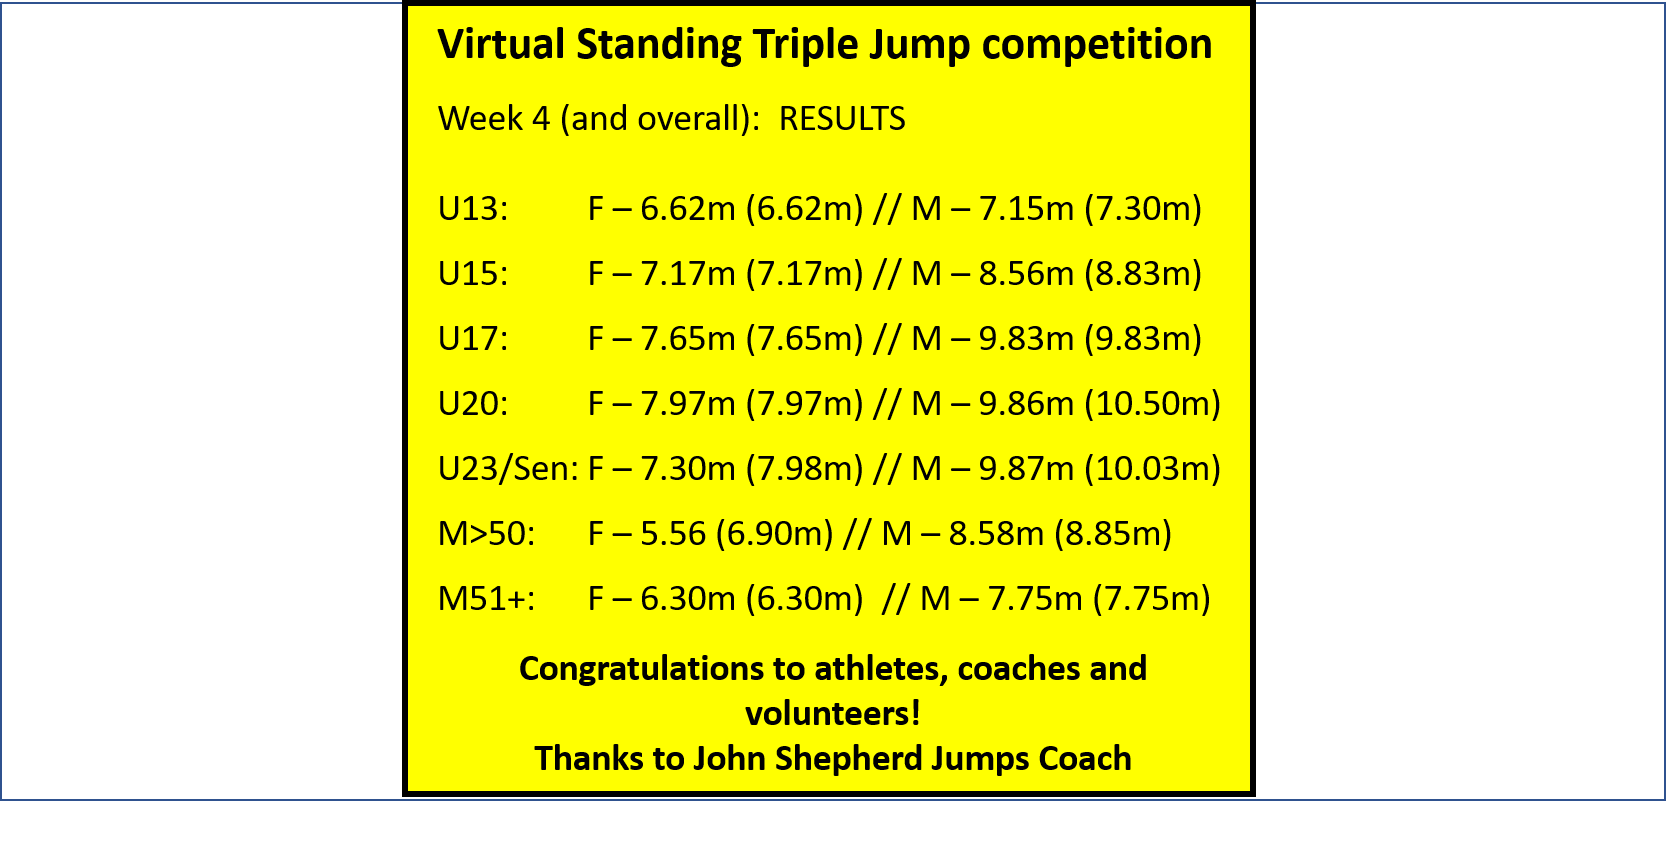 Virtual Standing Triple Jump week 4 and overall results